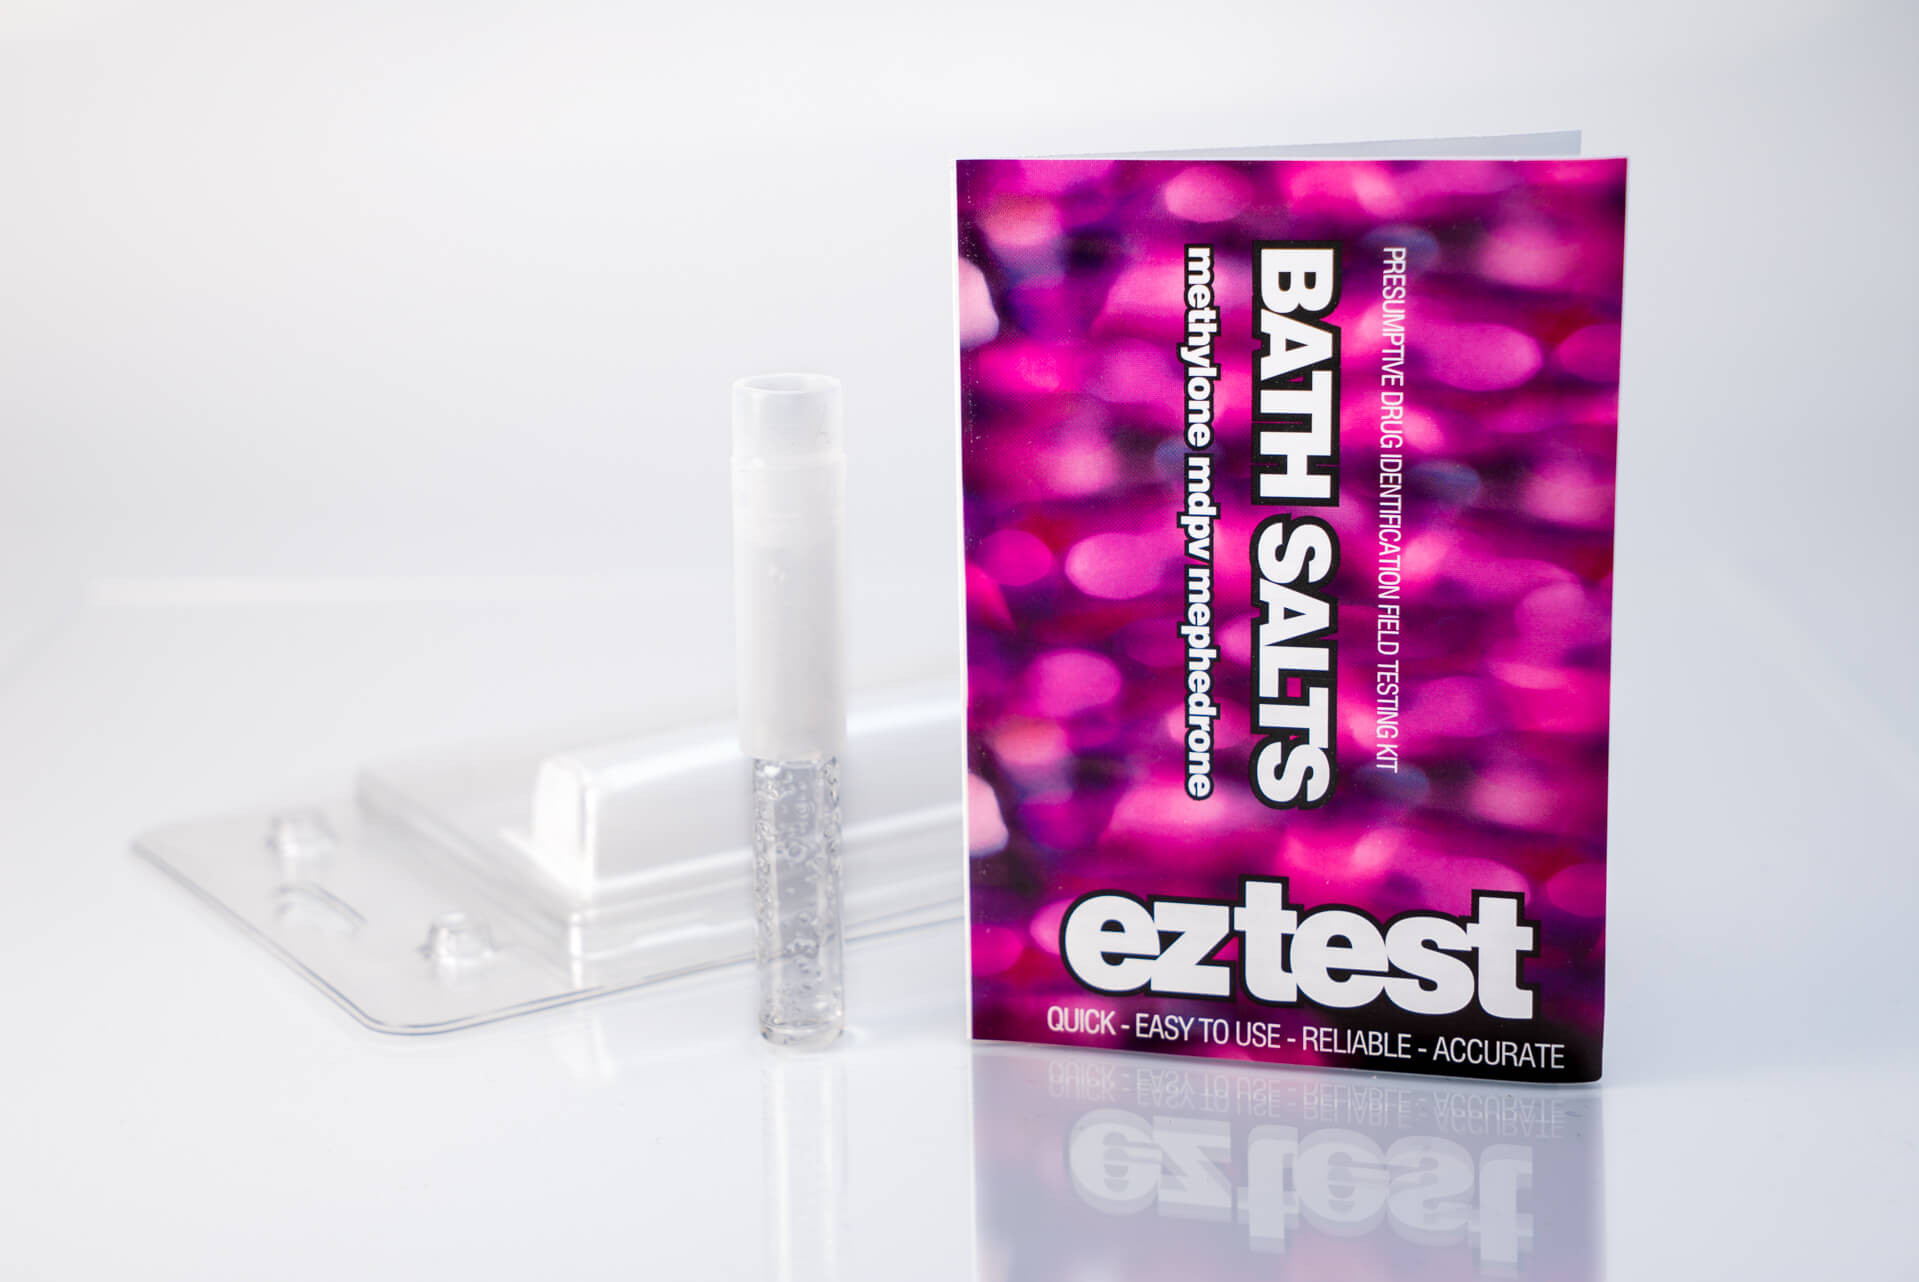 Kit Test Droga Sali da Bagno Monouso - Home Drug Testing Kits ...